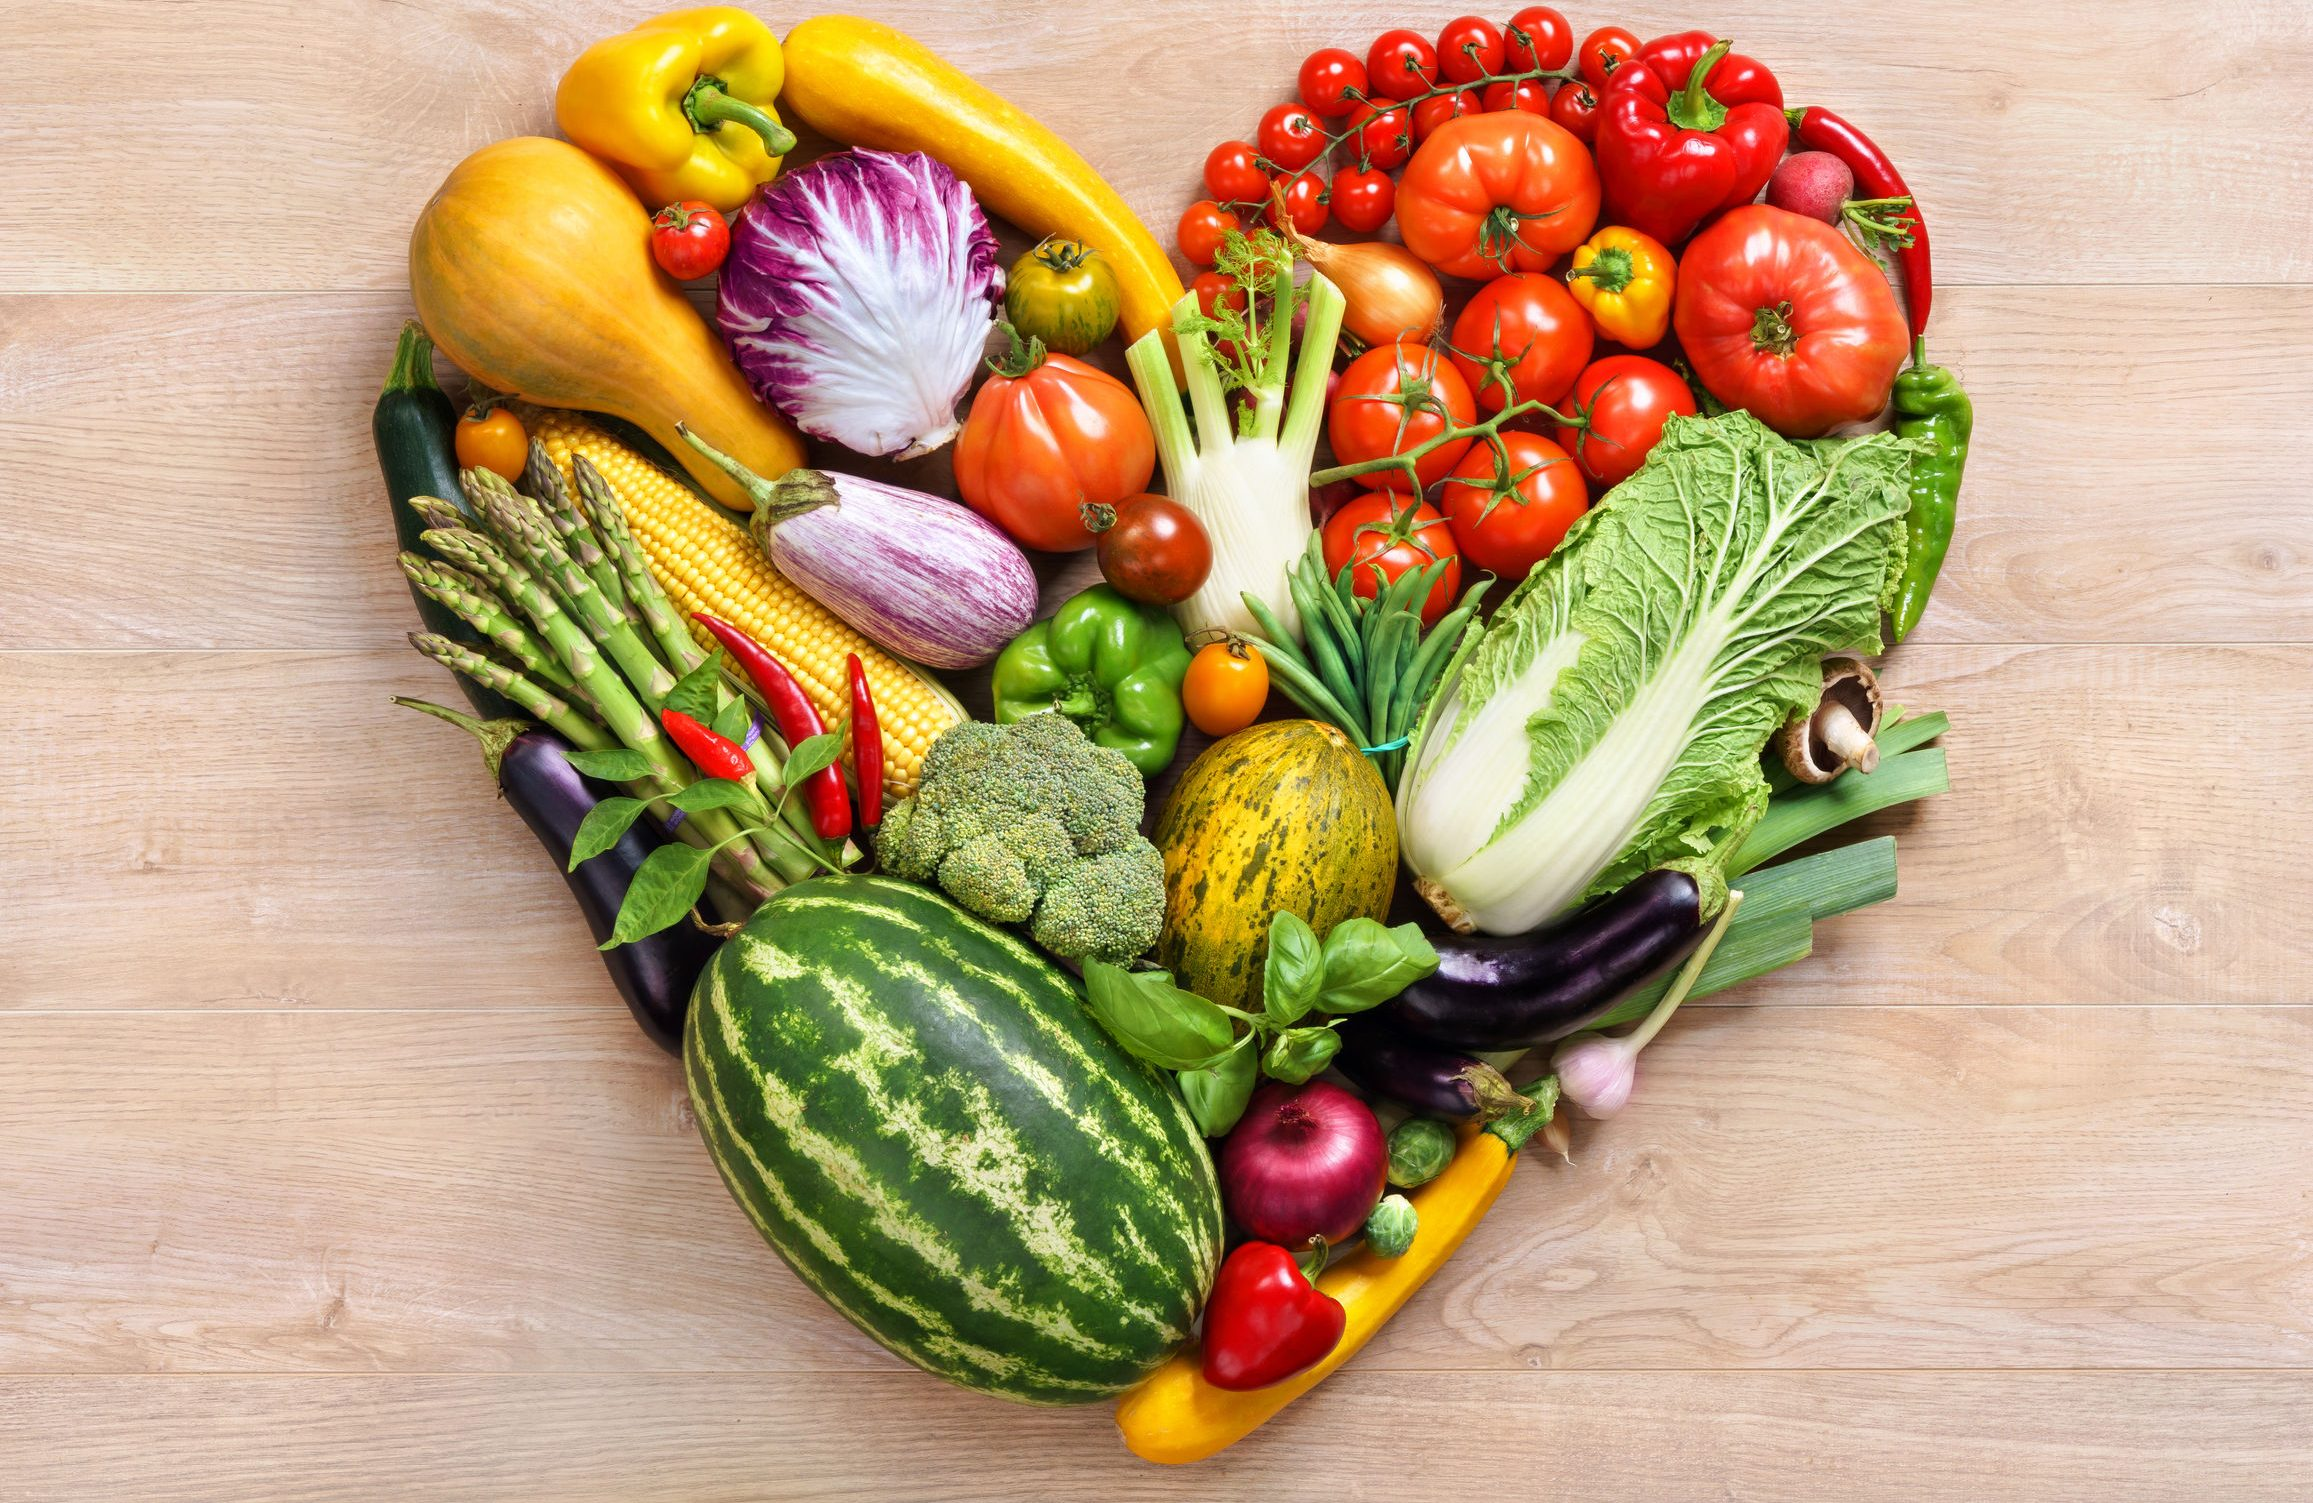 Healthy fruits and vegetables making up the shape of a heart